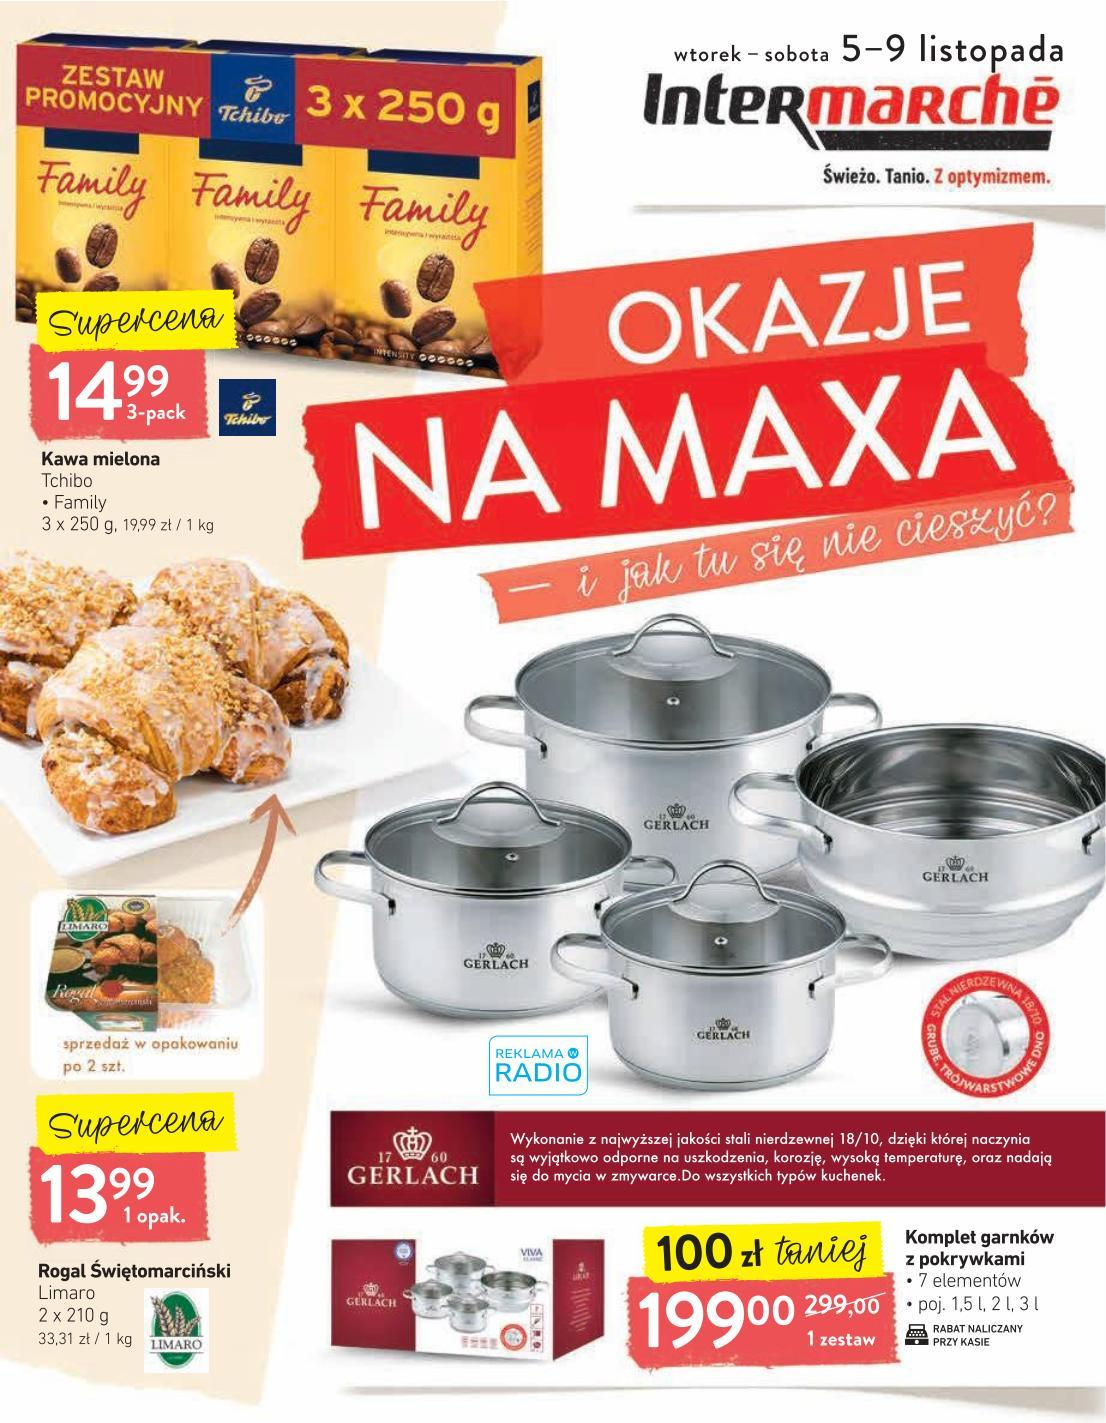 Gazetka promocyjna Intermarche do 09/11/2019 str.0